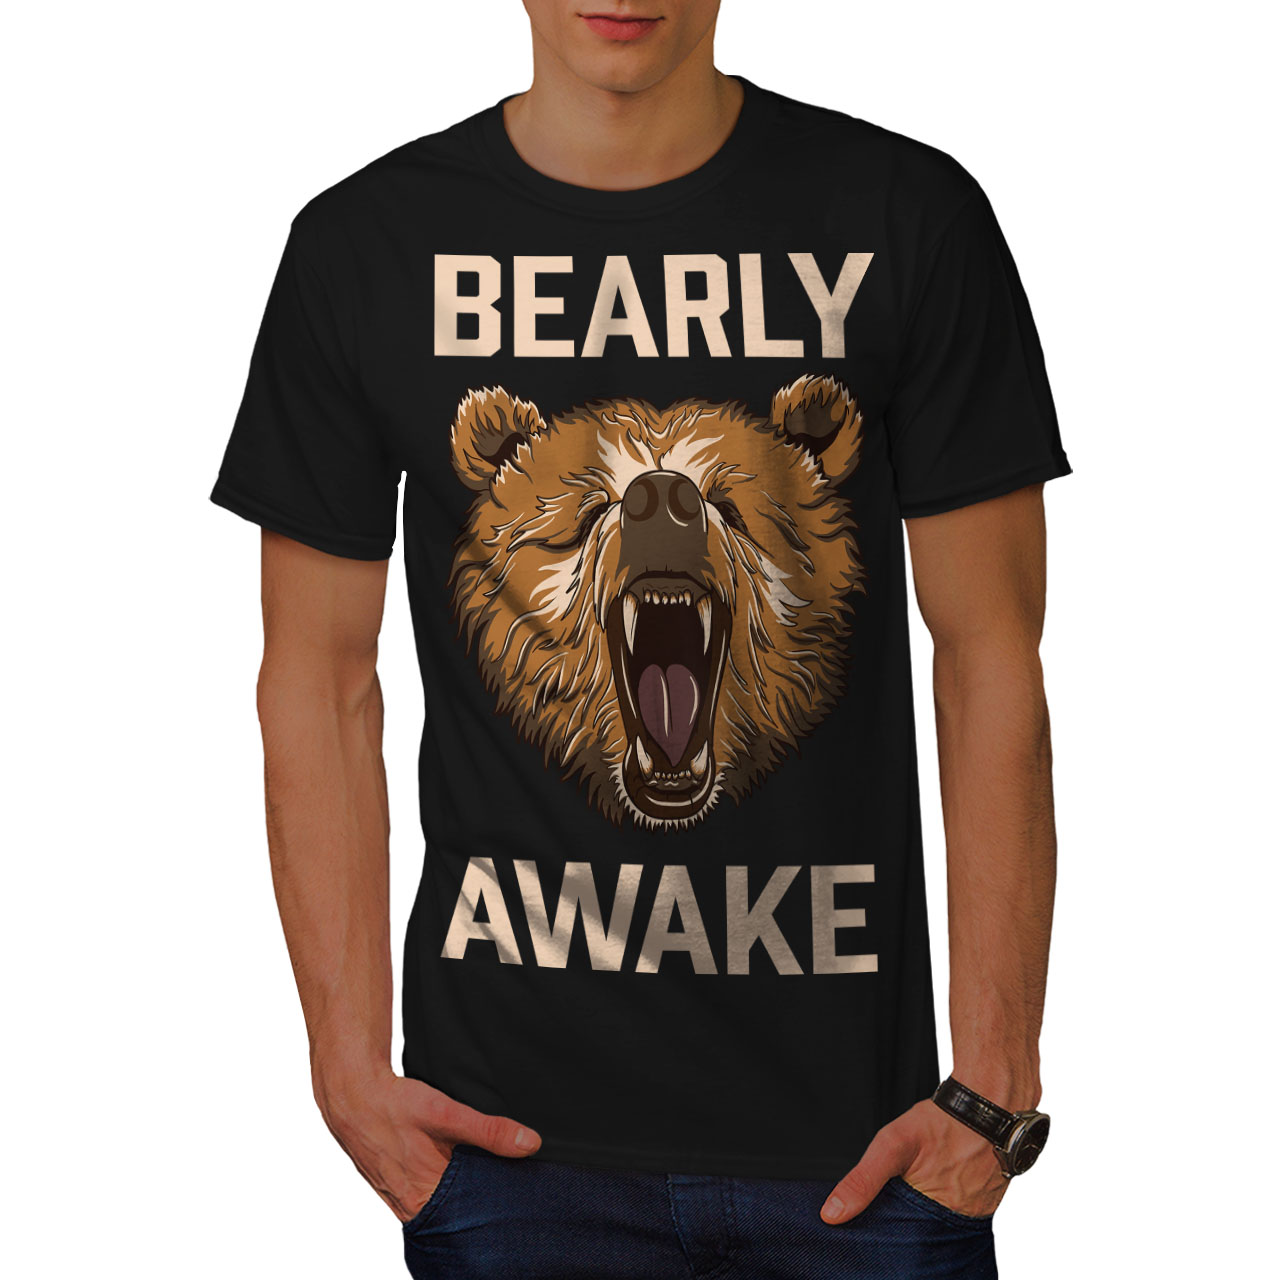 Wellcoda-Bearly-Grizzly-Awake-Mens-T-shirt-Coffee-Graphic-Design-Printed-Tee thumbnail 3